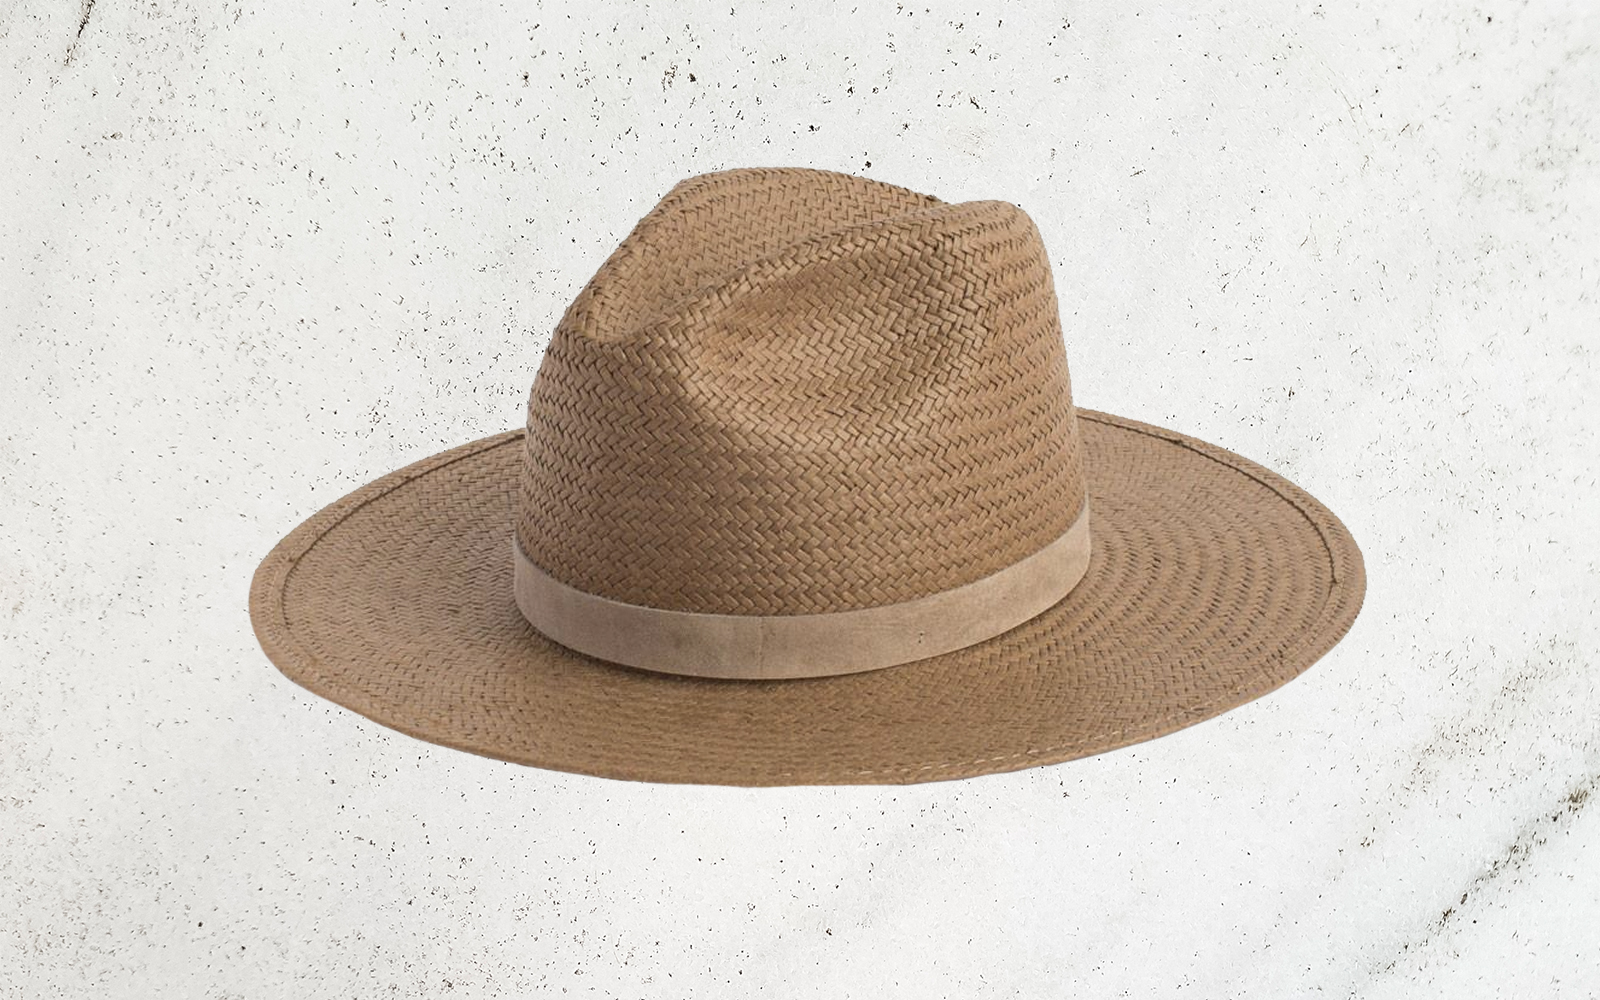 This Packable Straw Hat Won't Get Ruined If You Stuff It Into Your Carry-on